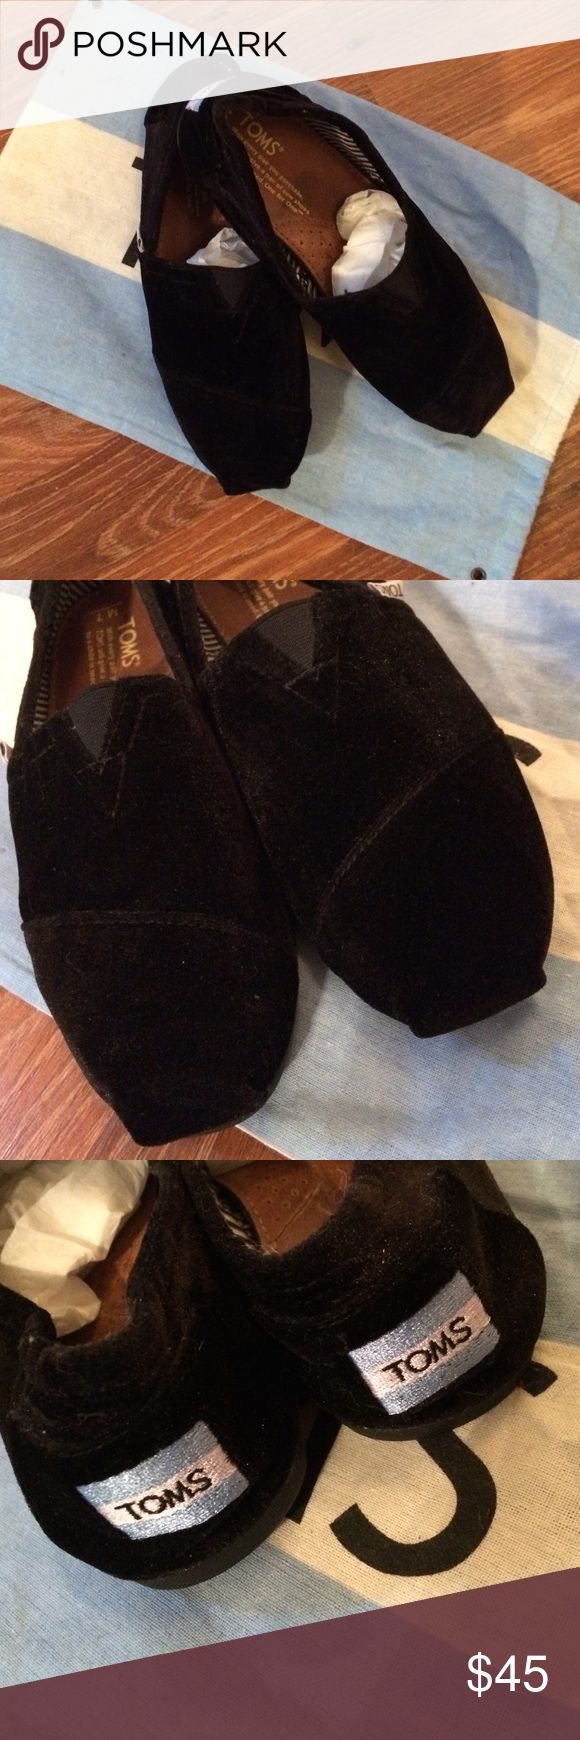 Velvet Toms These are so beautiful and plushy soft black velvet toms.  I wore them twice and have had them stored in their dust bag ever since.  Almost new so cute!!  These are a Men's 7, I wear a women's Toms and these fit me fine.  According to Toms comparison sizing Men's 7 is equivalent to Women's 8.5.  I will consider reasonable offers! TOMS Shoes Loafers & Slip-Ons